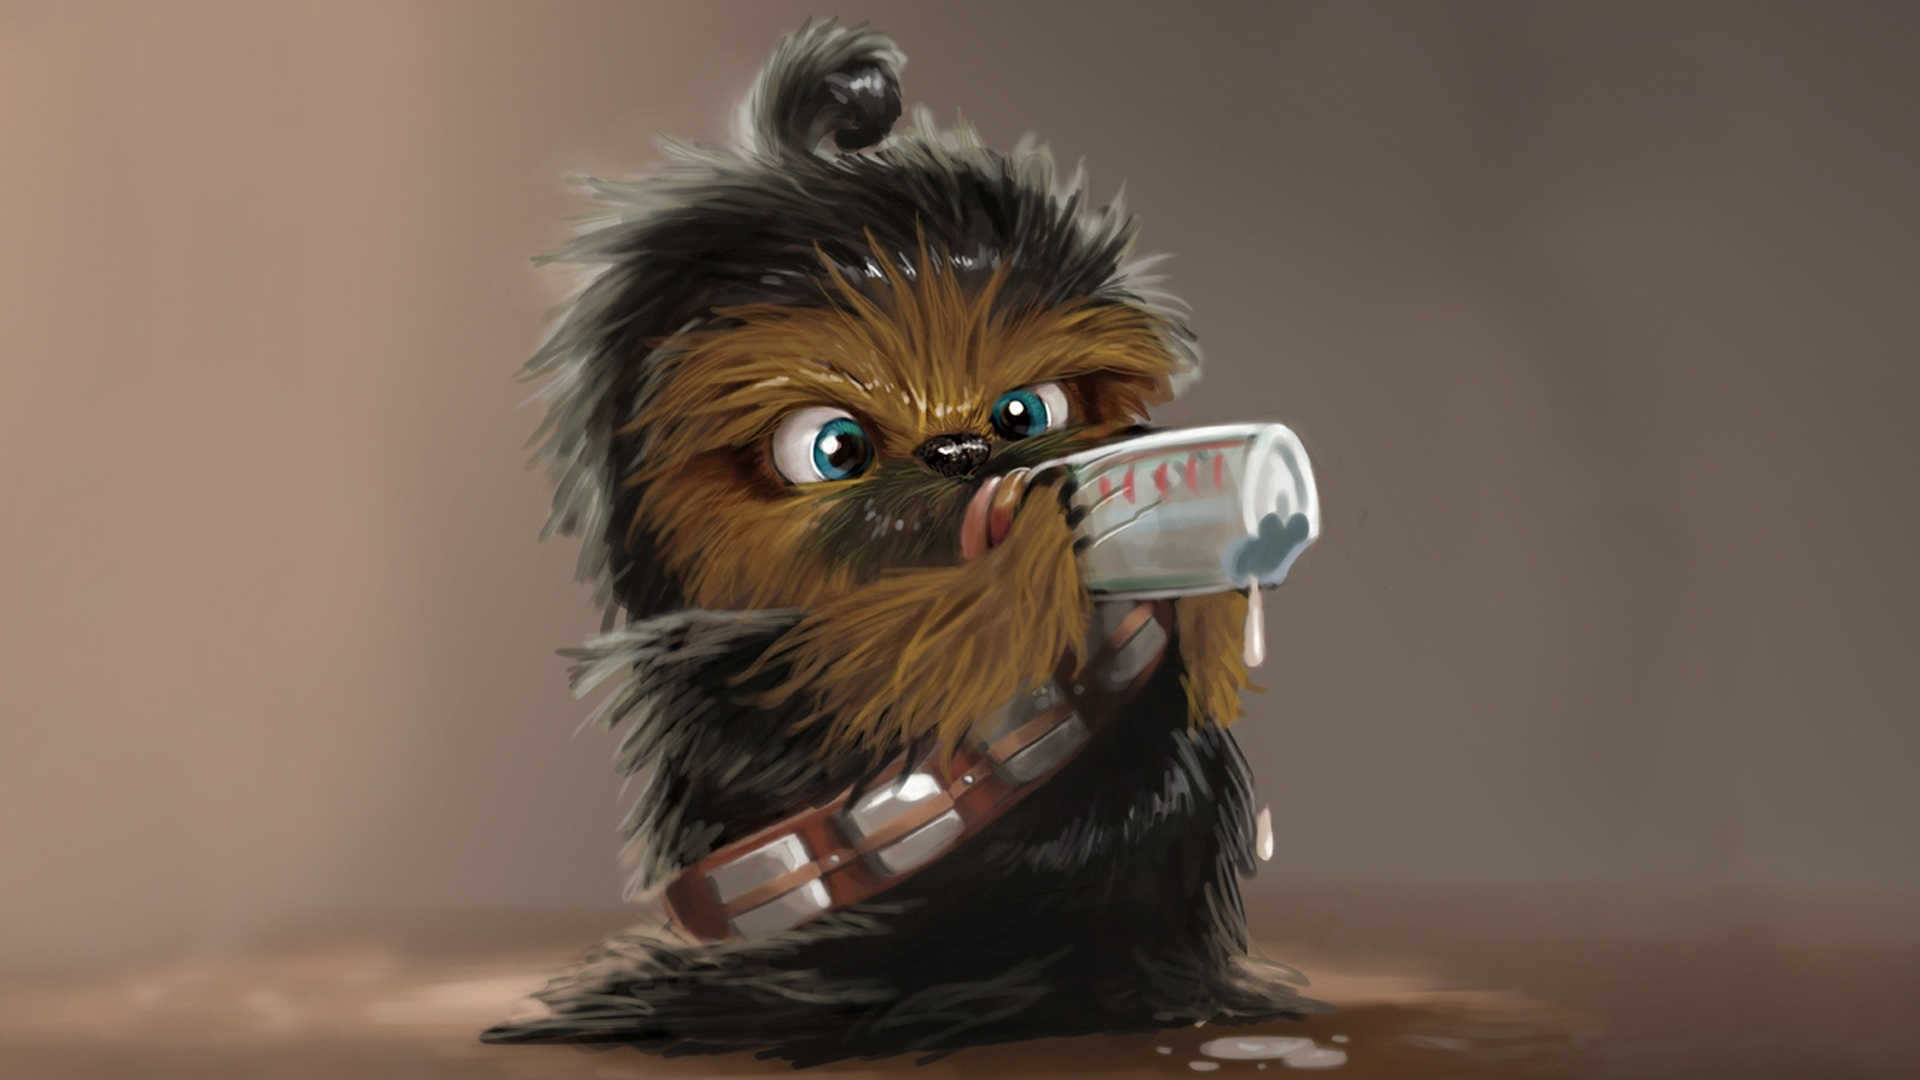 download wallpaper 1920x1080 star wars, chewbacca, drink, baby hd